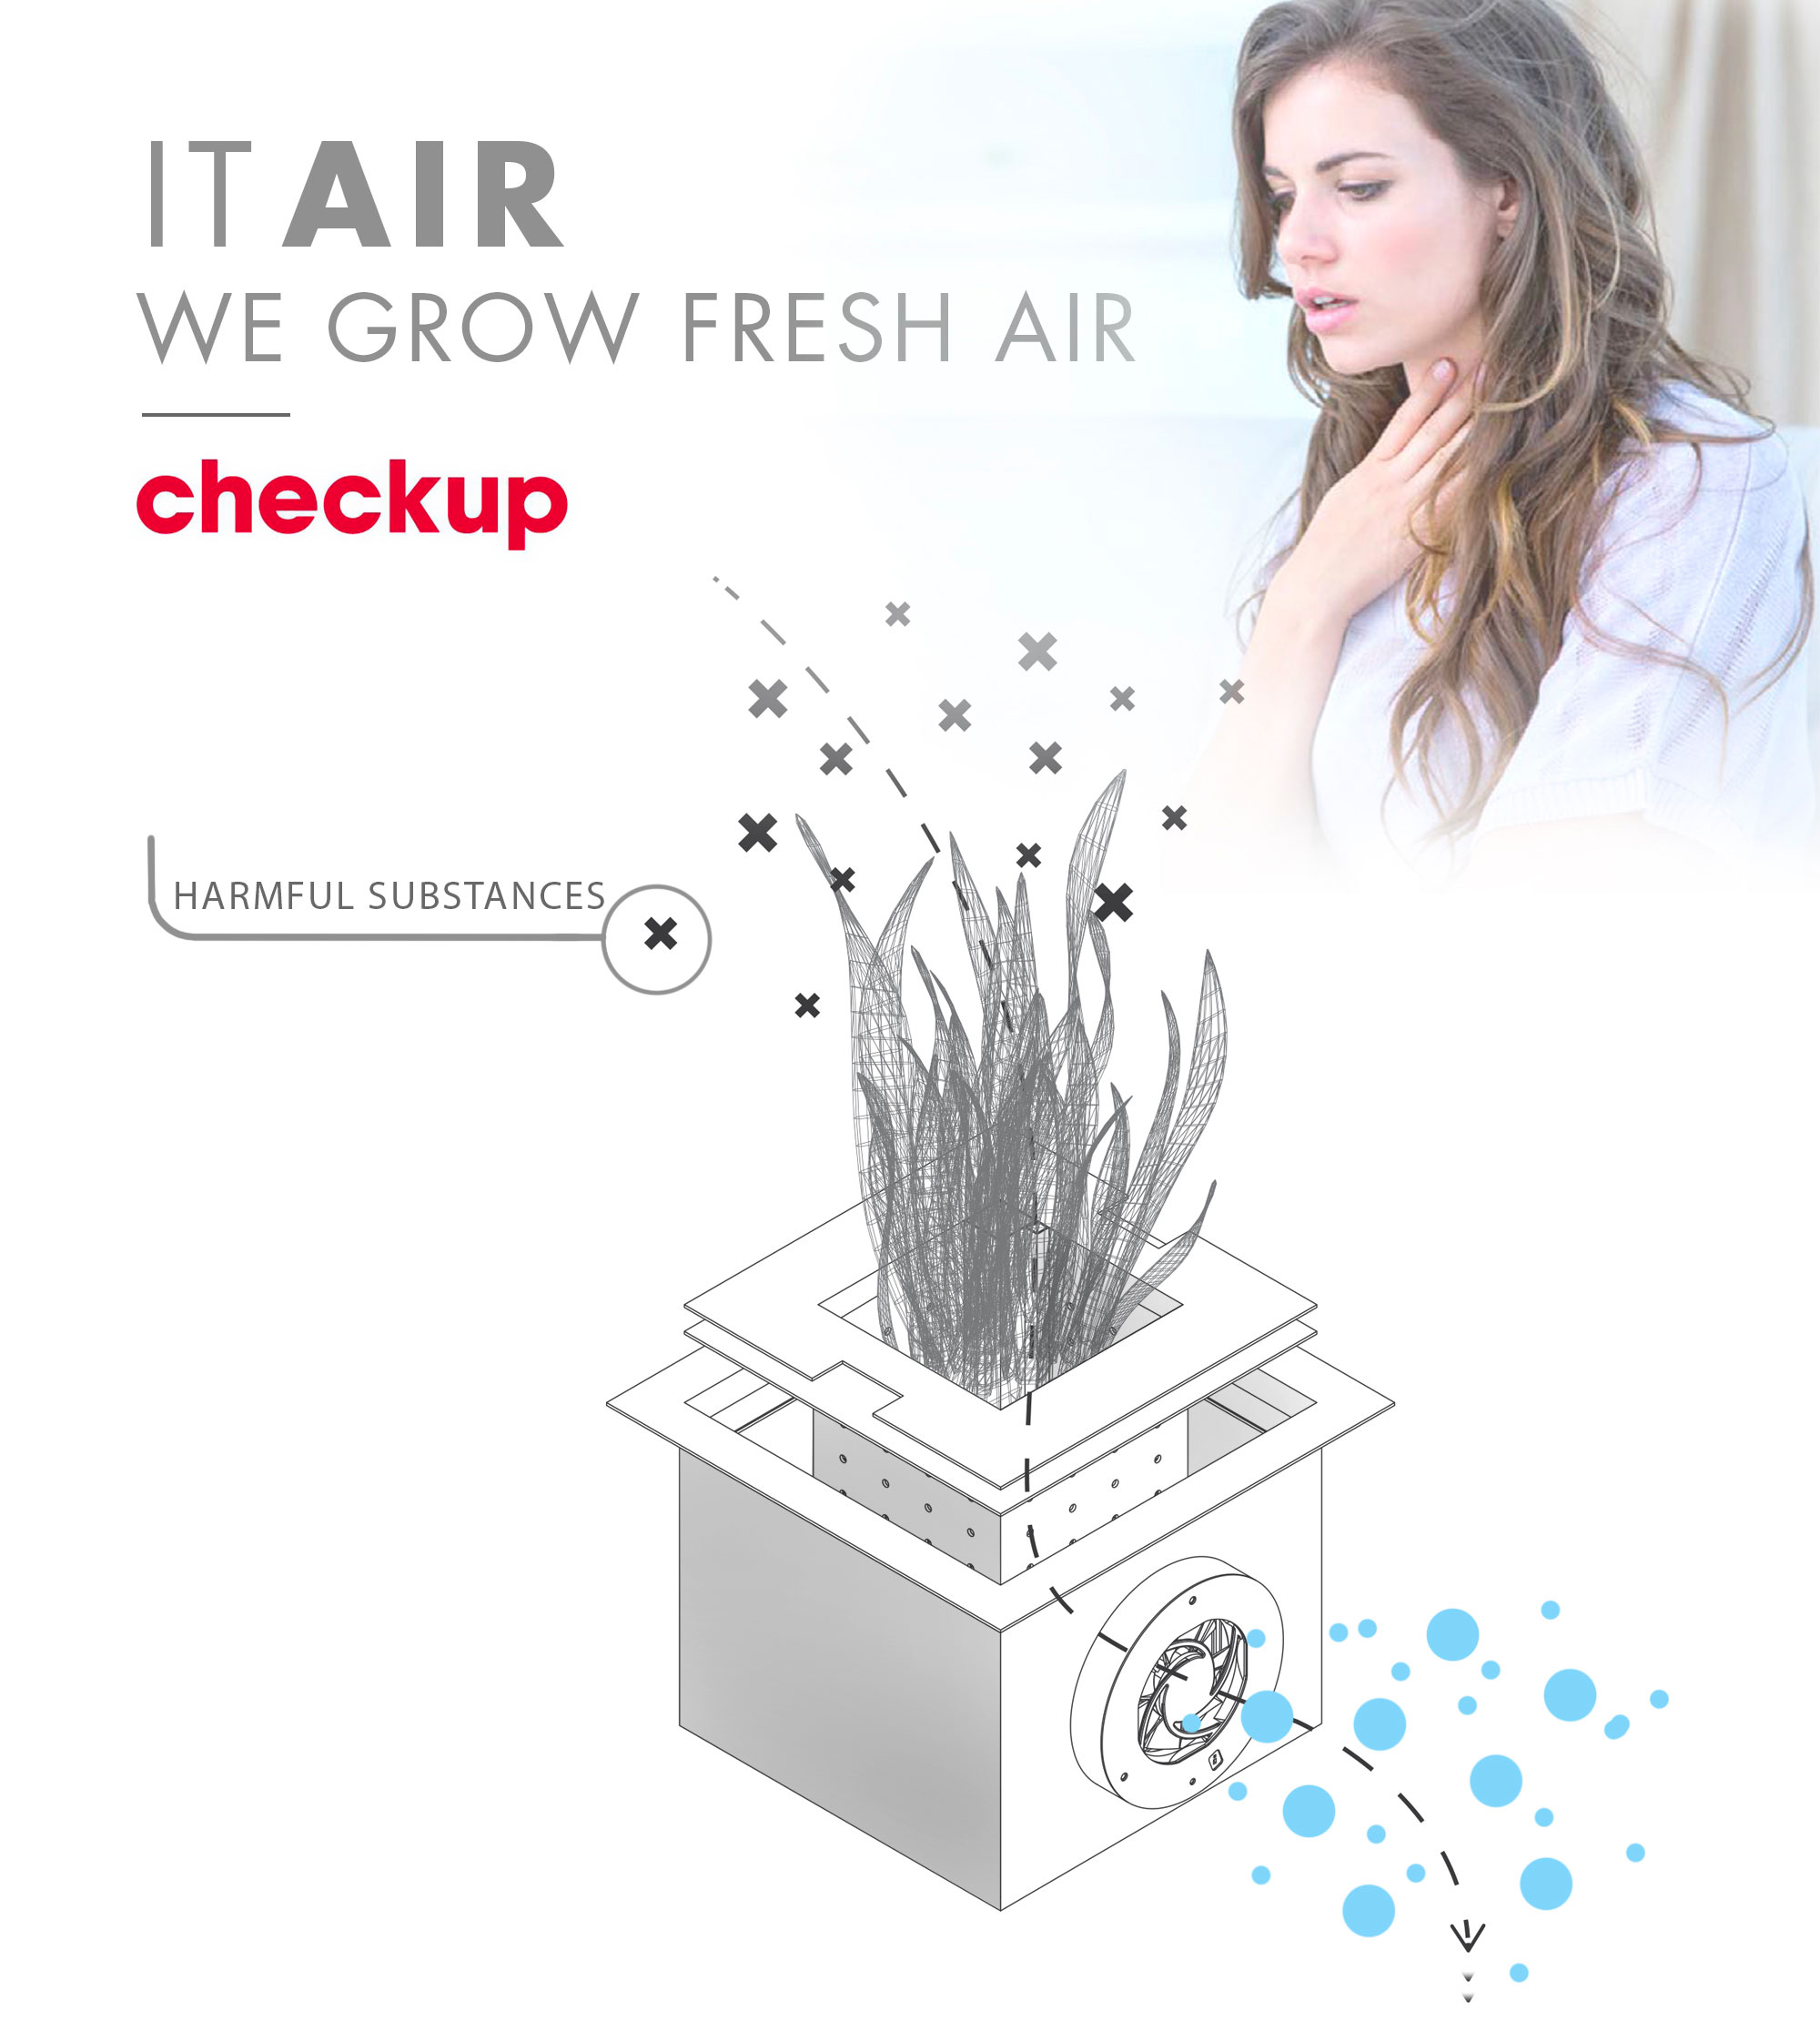 itair - we grow fresh air